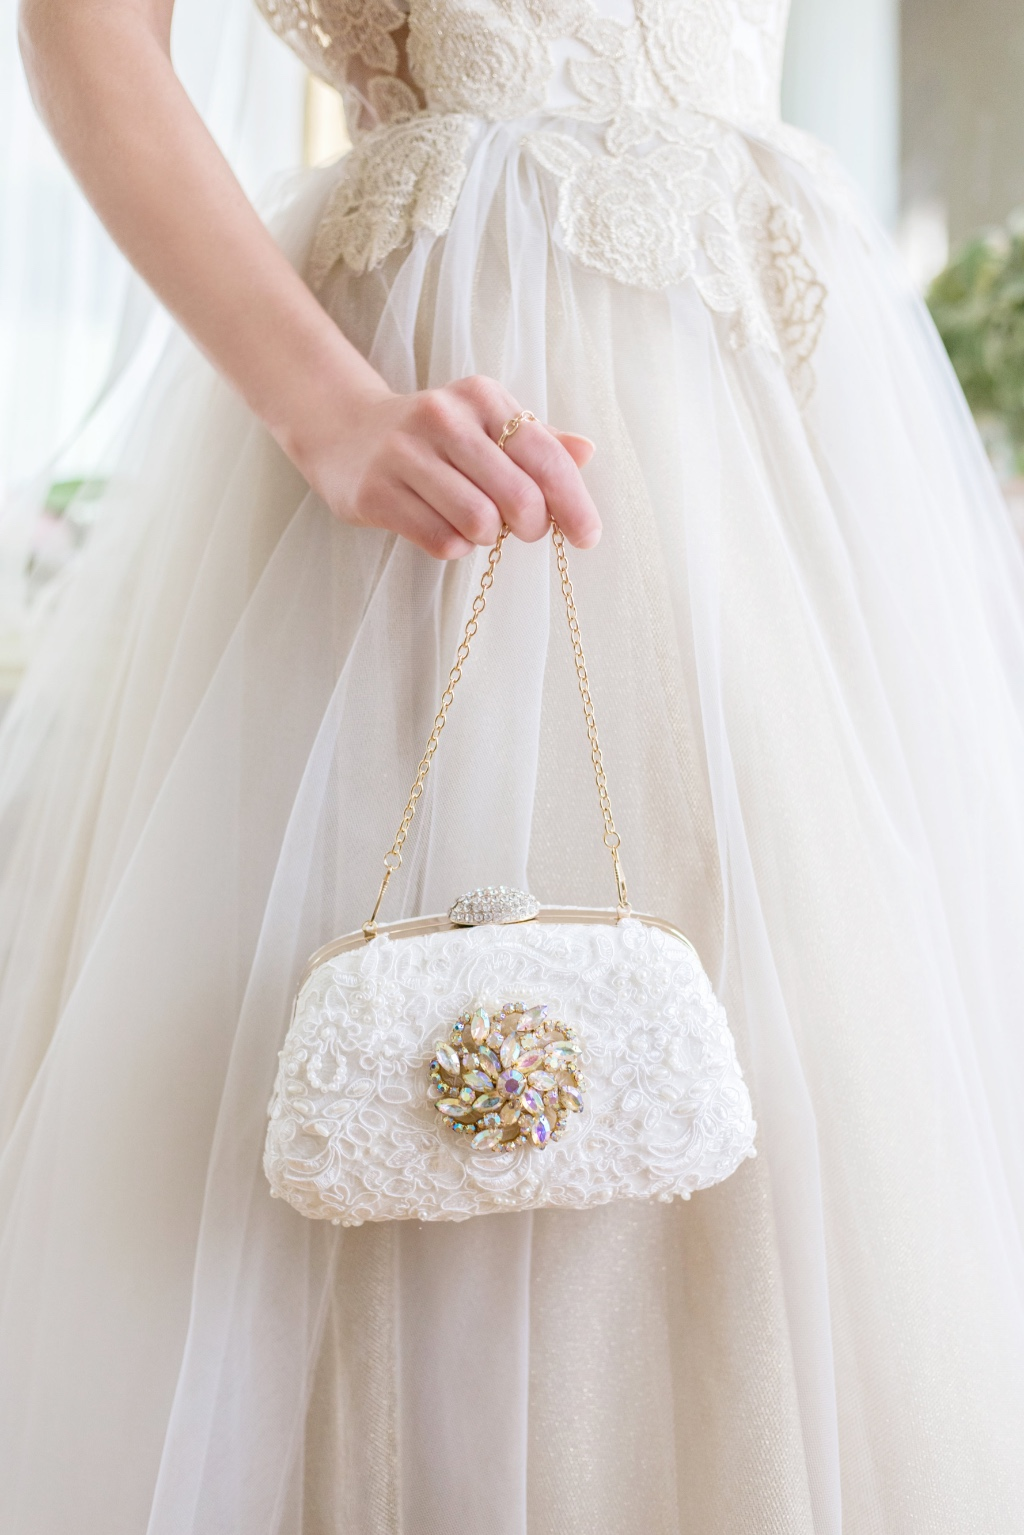 Small little couture clutches that hold all your wedding day essentials